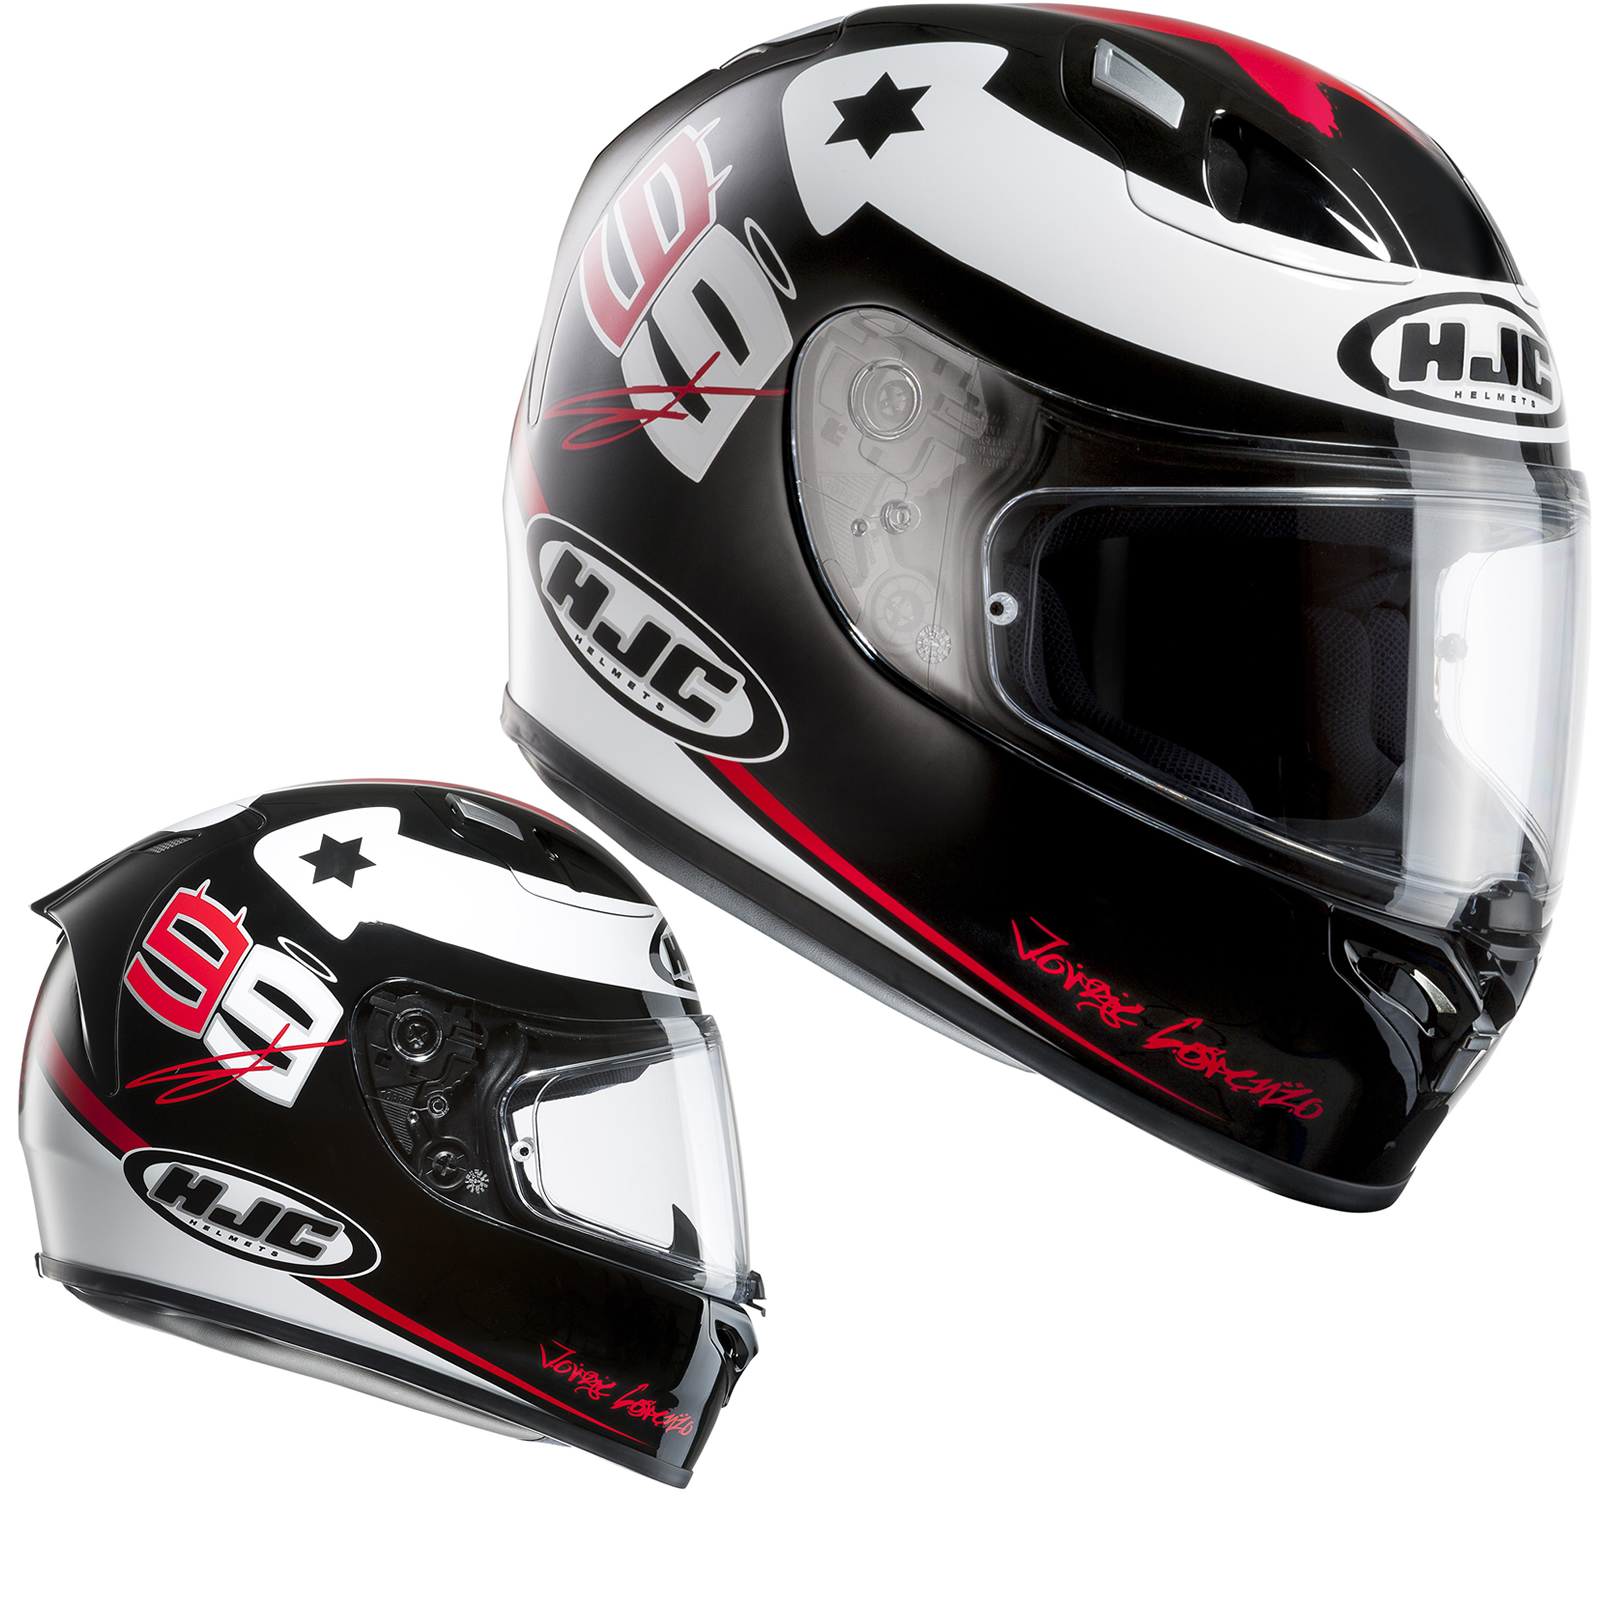 hjc fg 17 x fuera lorenzo motorcycle helmet full face helmets. Black Bedroom Furniture Sets. Home Design Ideas